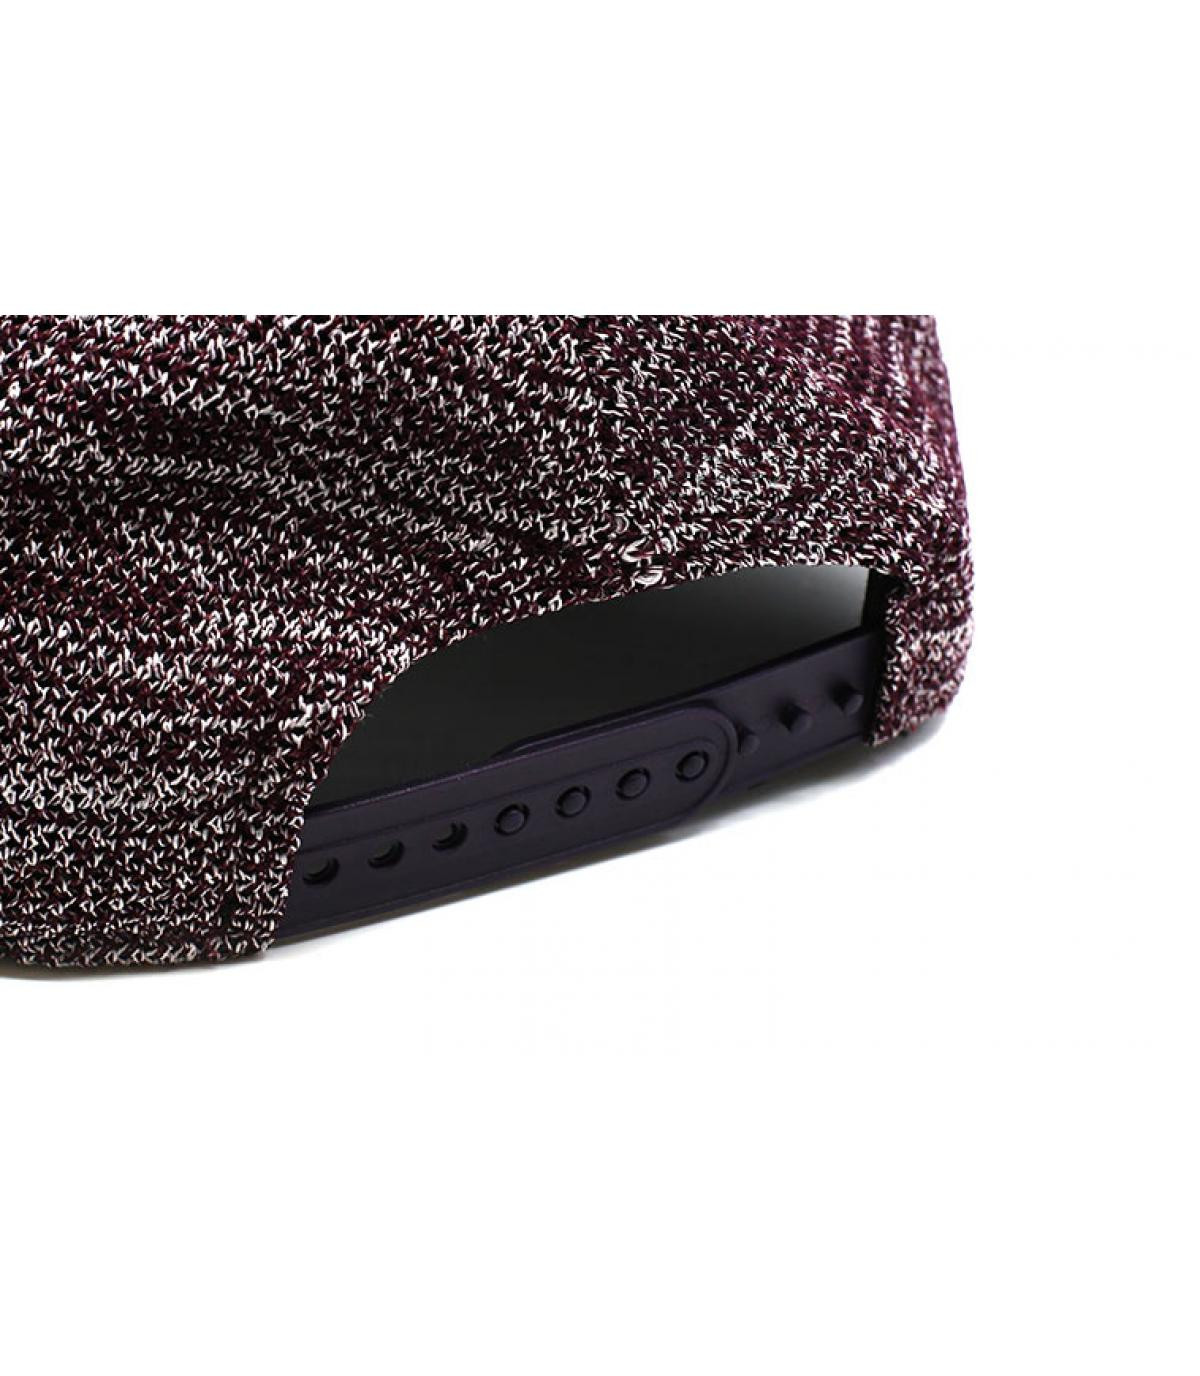 Details Enginnered Fit LA 9Fifty maroon - afbeeling 5